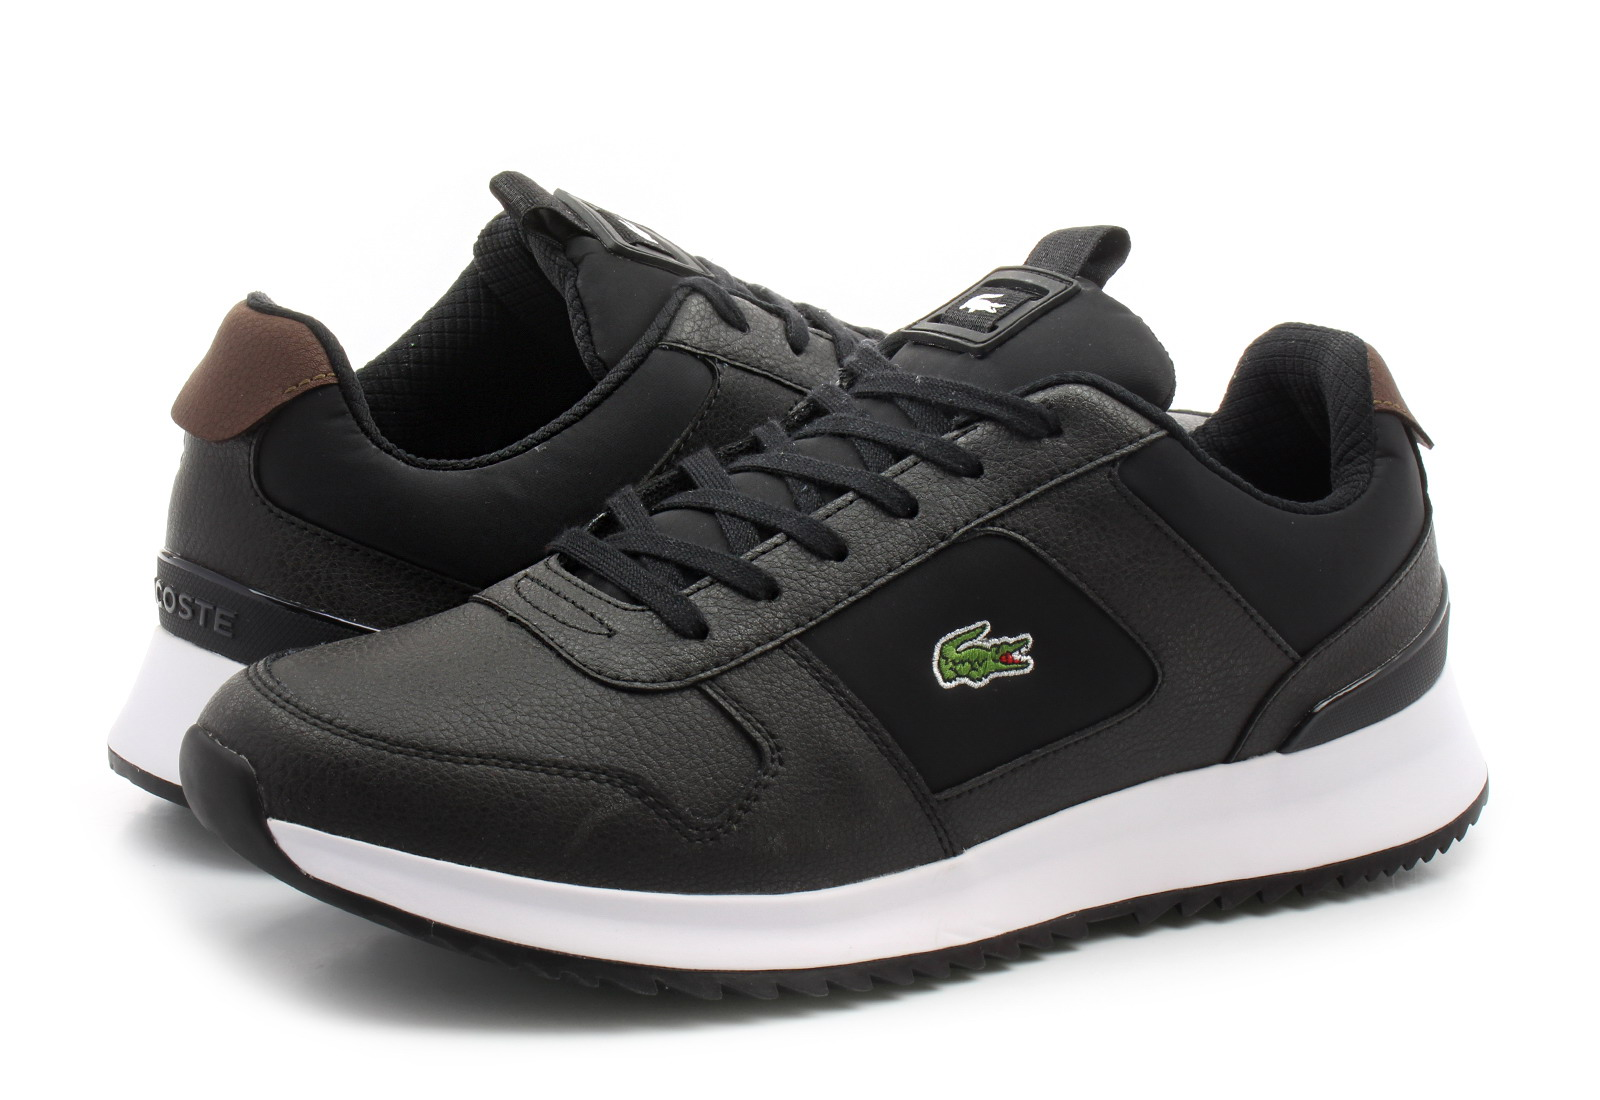 be92ccdbb Lacoste Shoes - Joggeur 2.0 - 183SPM0022-094 - Online shop for ...